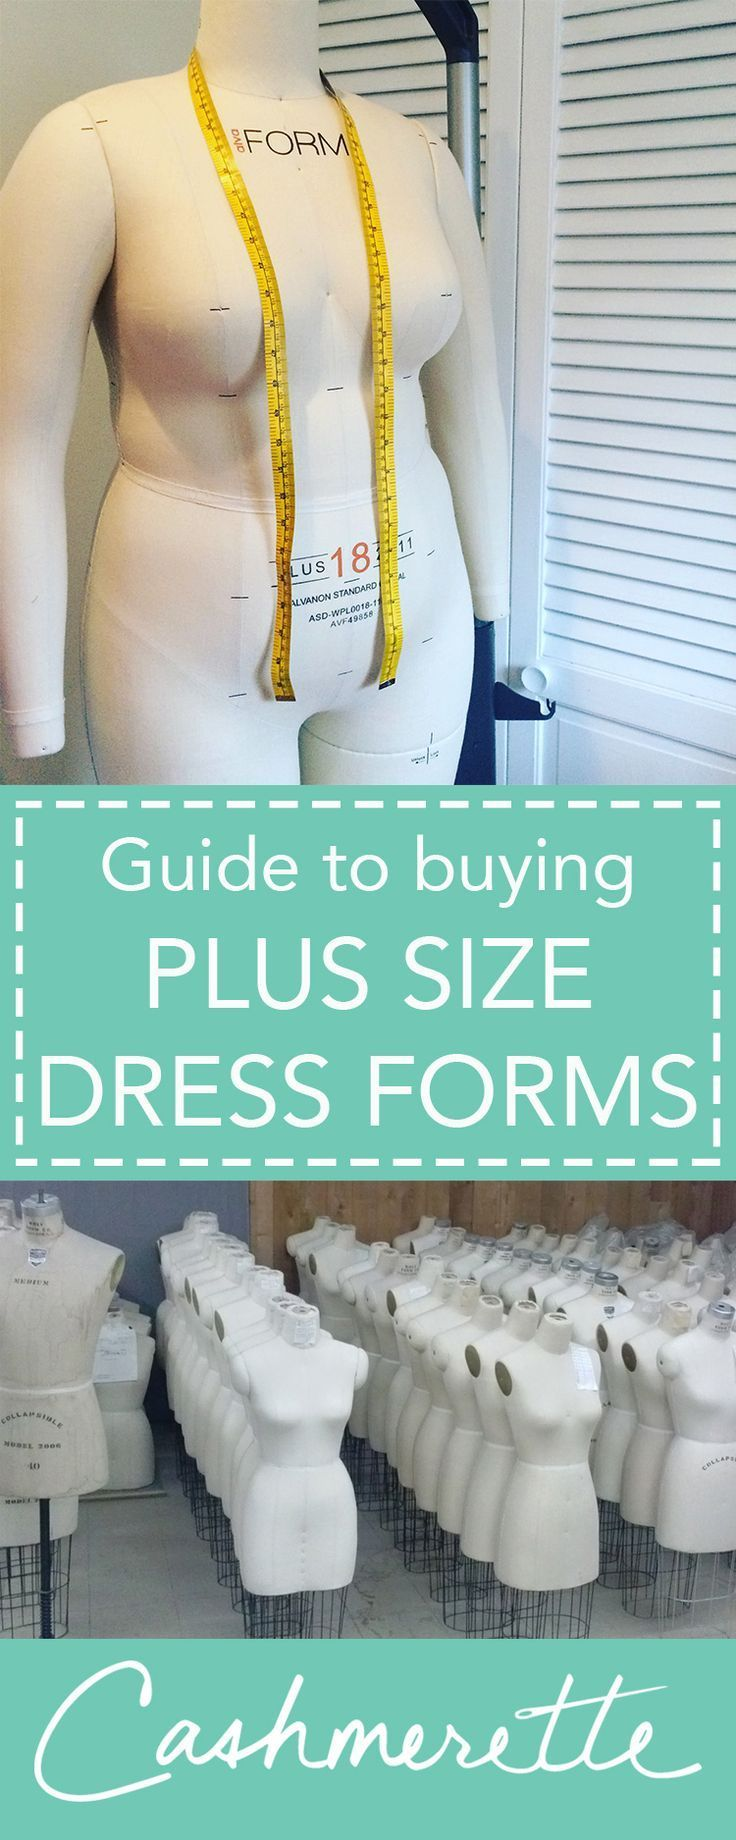 A guide to plus size dress forms for garment sewing by Cashmerette